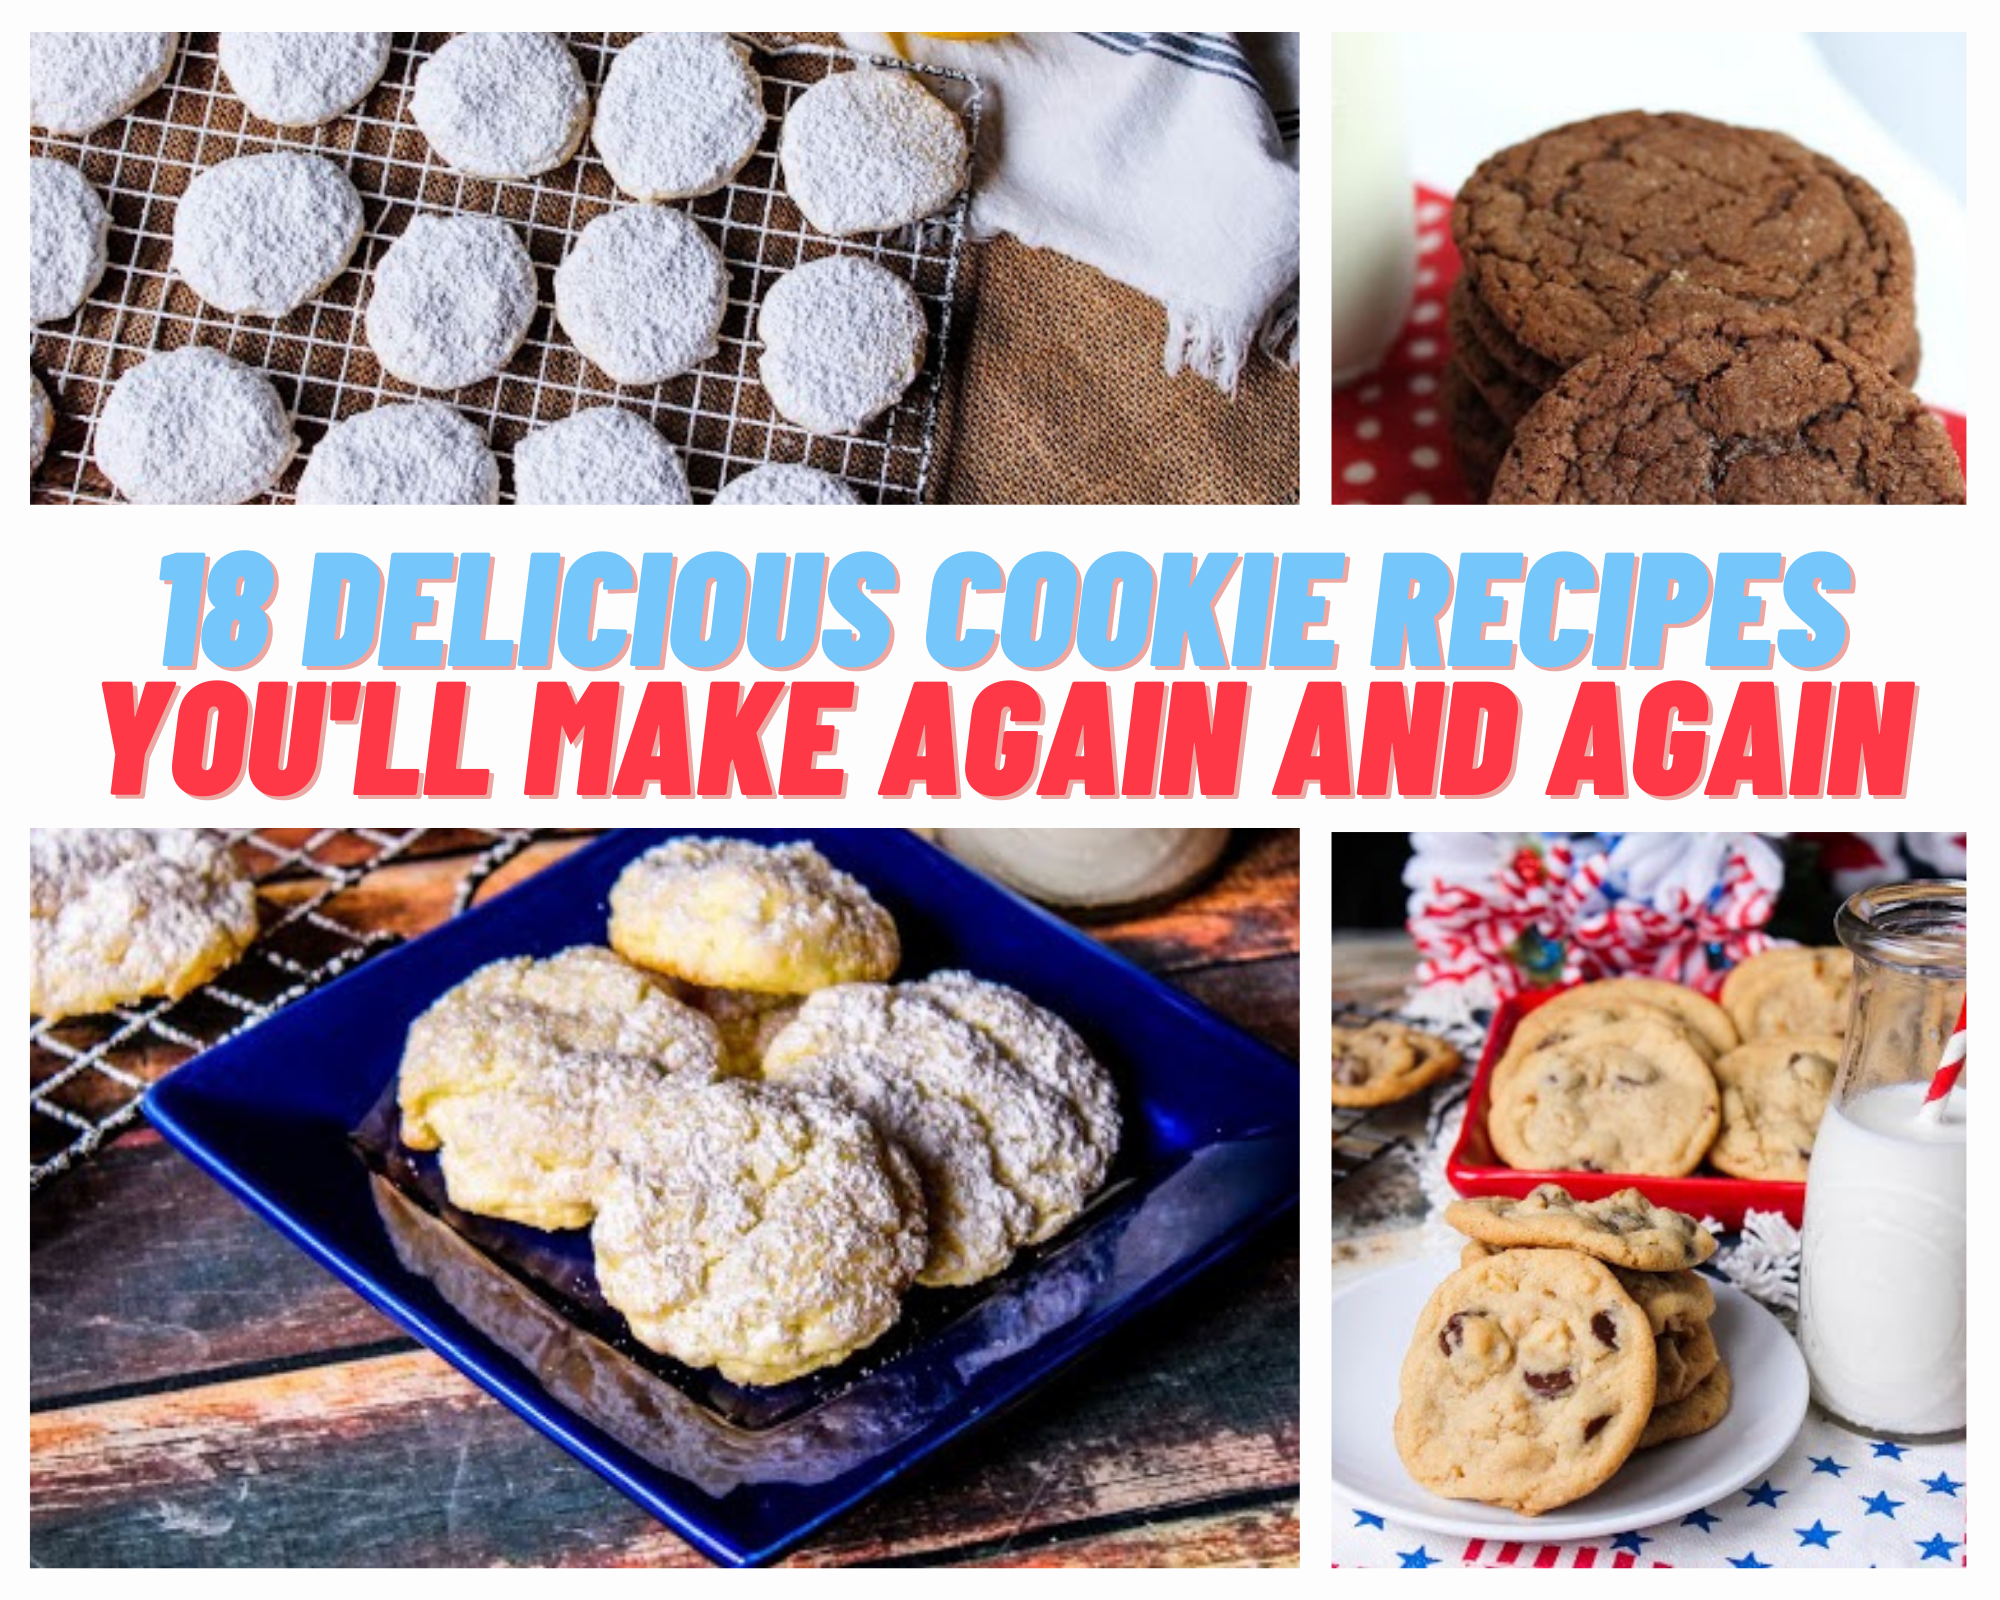 gooey butter cookies, chocolate chip cookies, molasses cookies and more